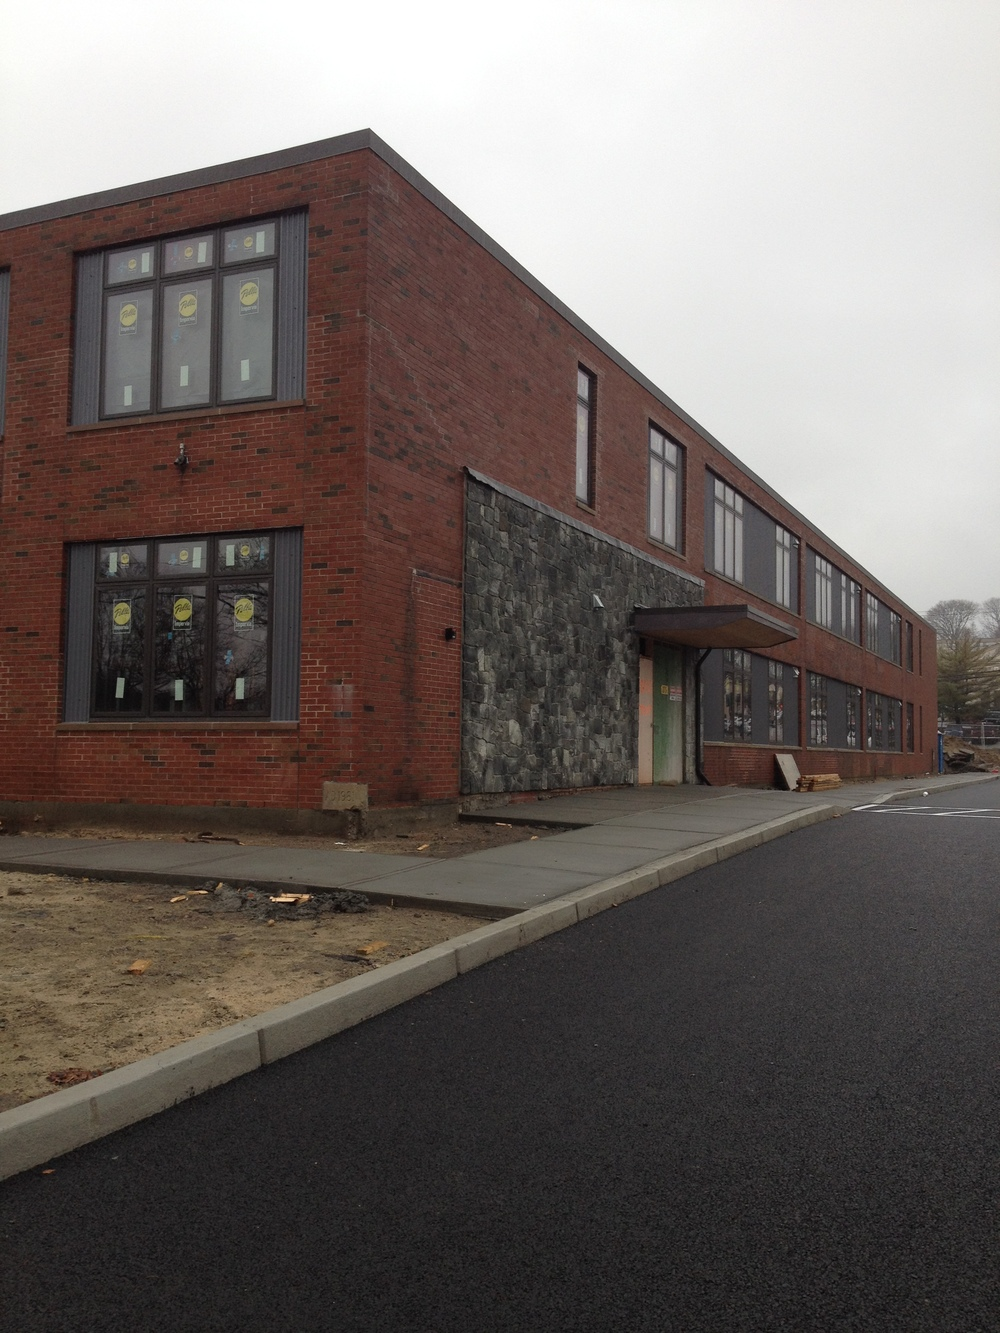 New awning and stonework at front entrance (and permeable asphalt in the parking lot!).